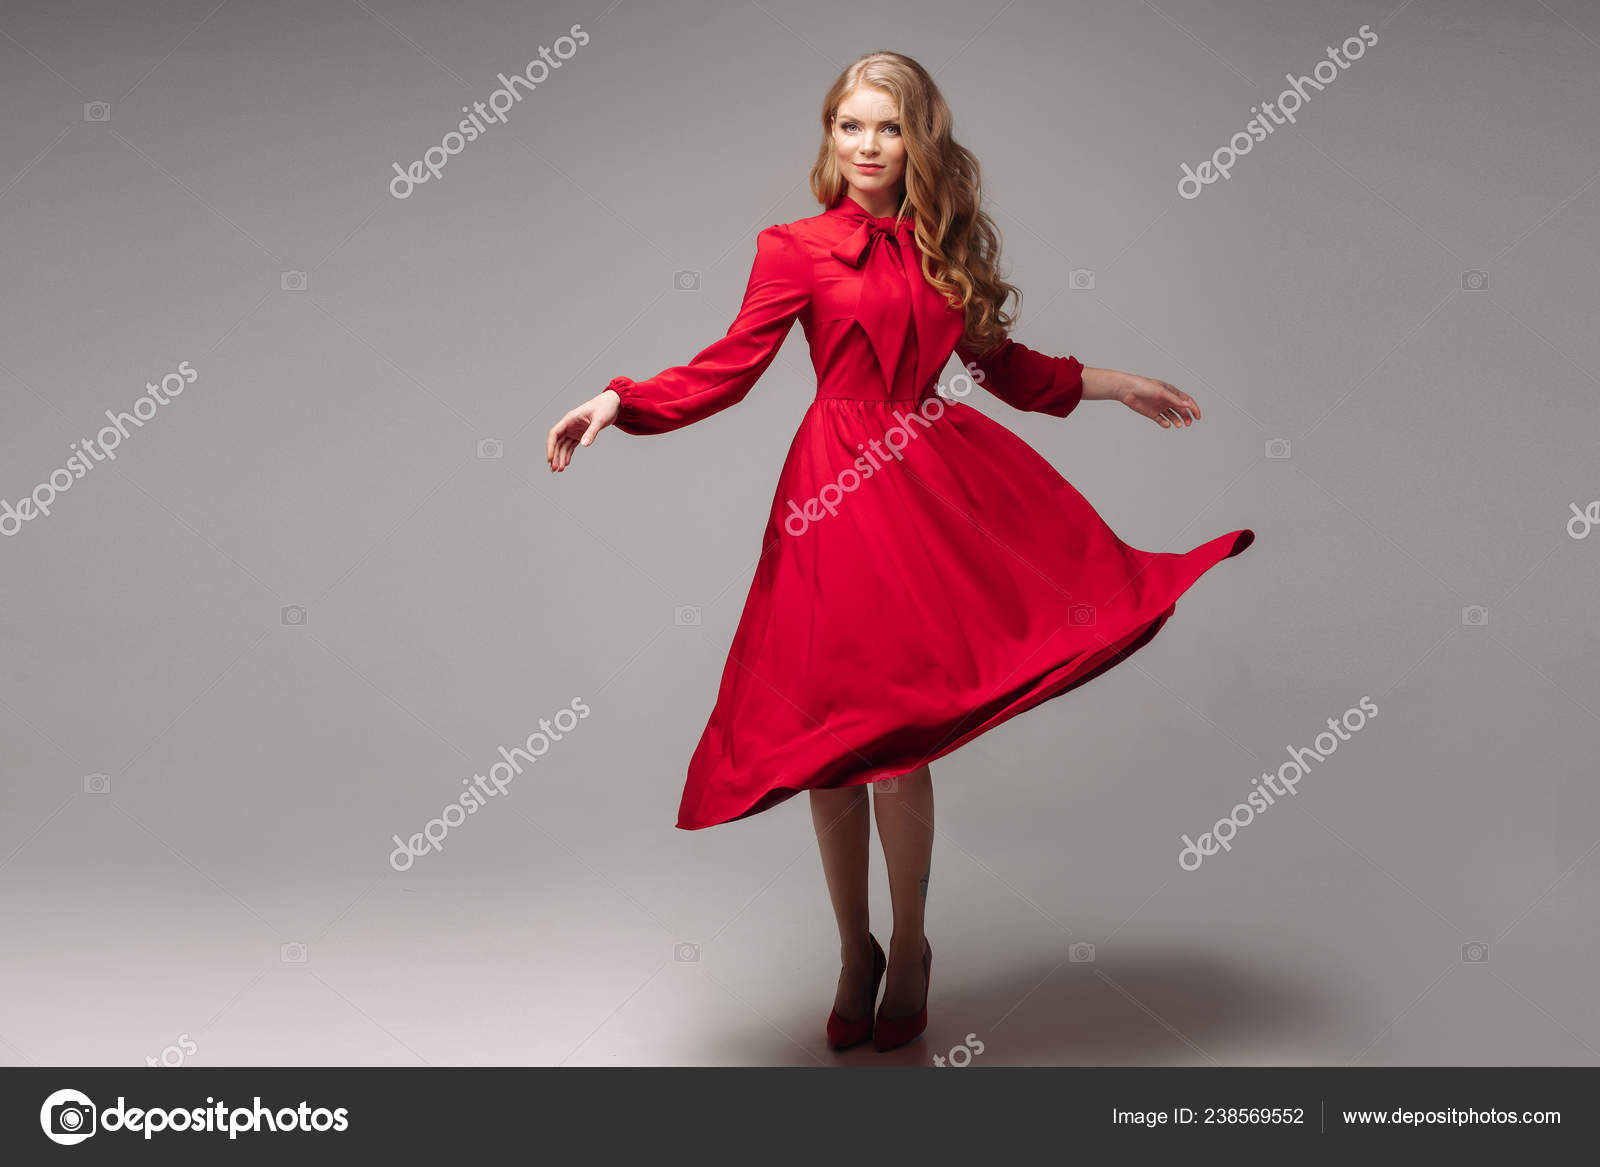 6f459519c87 Stunning slim model in bright red dress and black heels. — Stock Photo